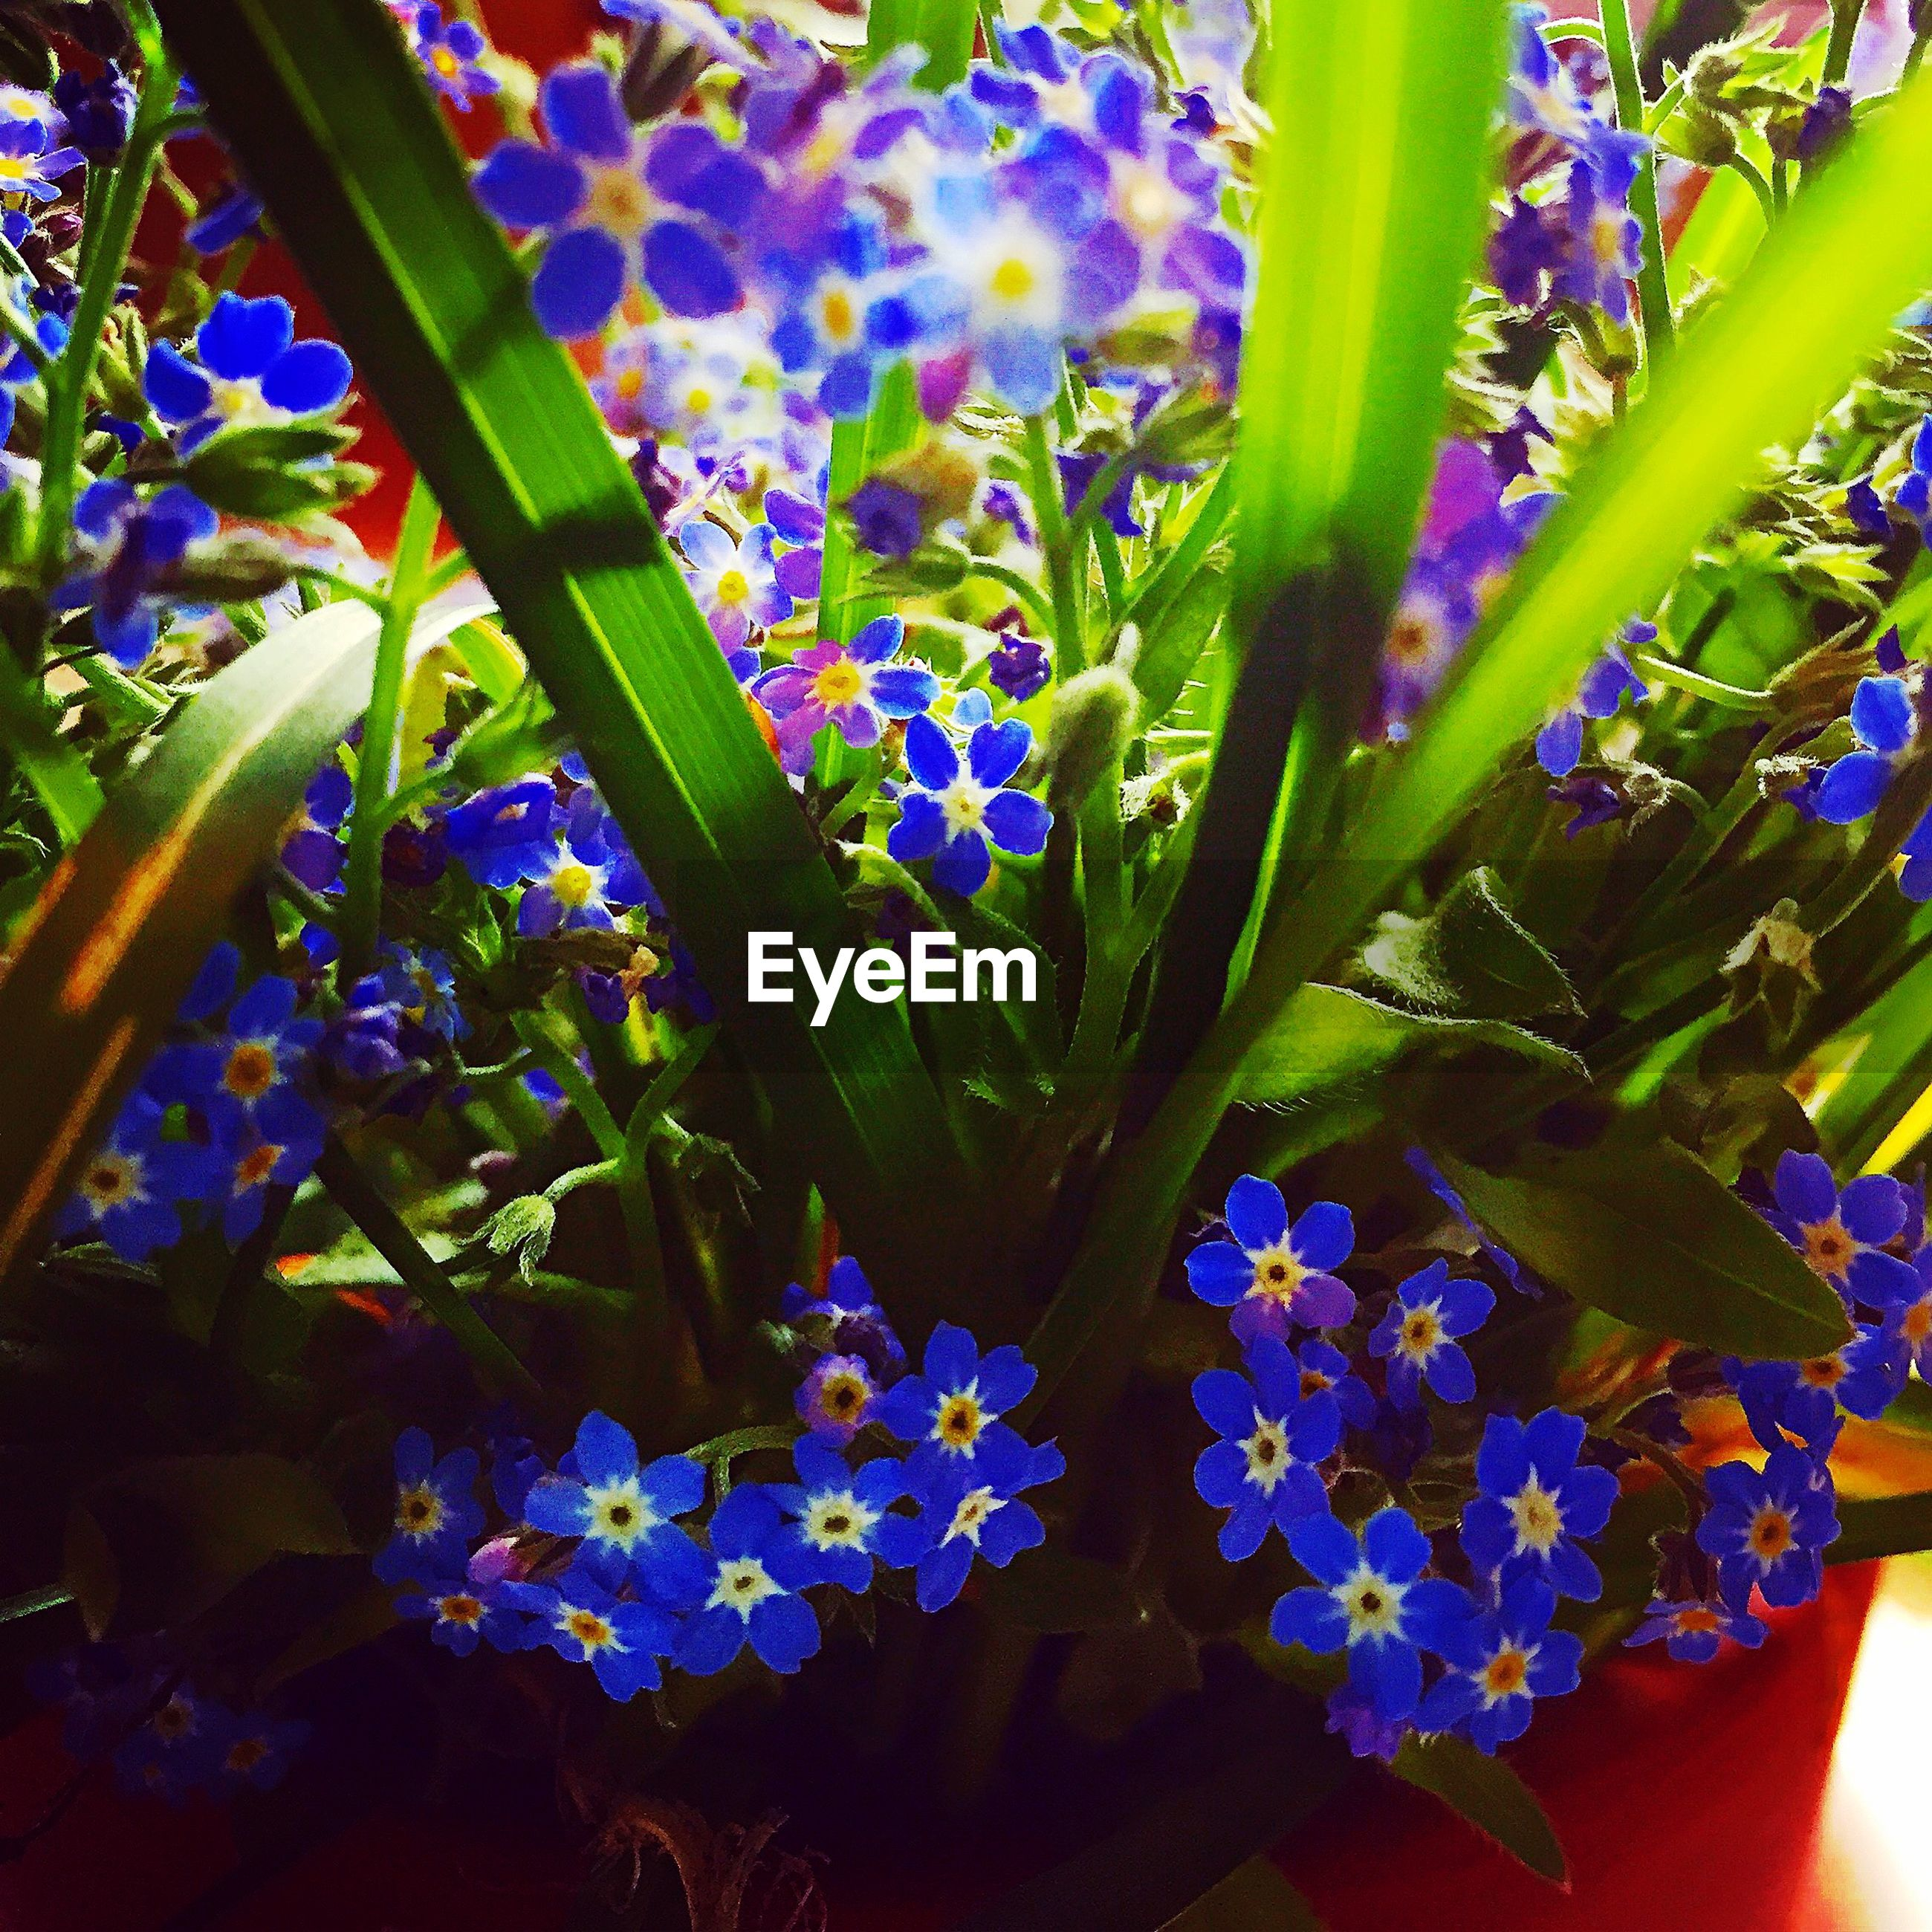 flower, purple, freshness, growth, fragility, petal, plant, beauty in nature, blue, flower head, nature, blooming, leaf, in bloom, close-up, botany, blossom, potted plant, stem, springtime